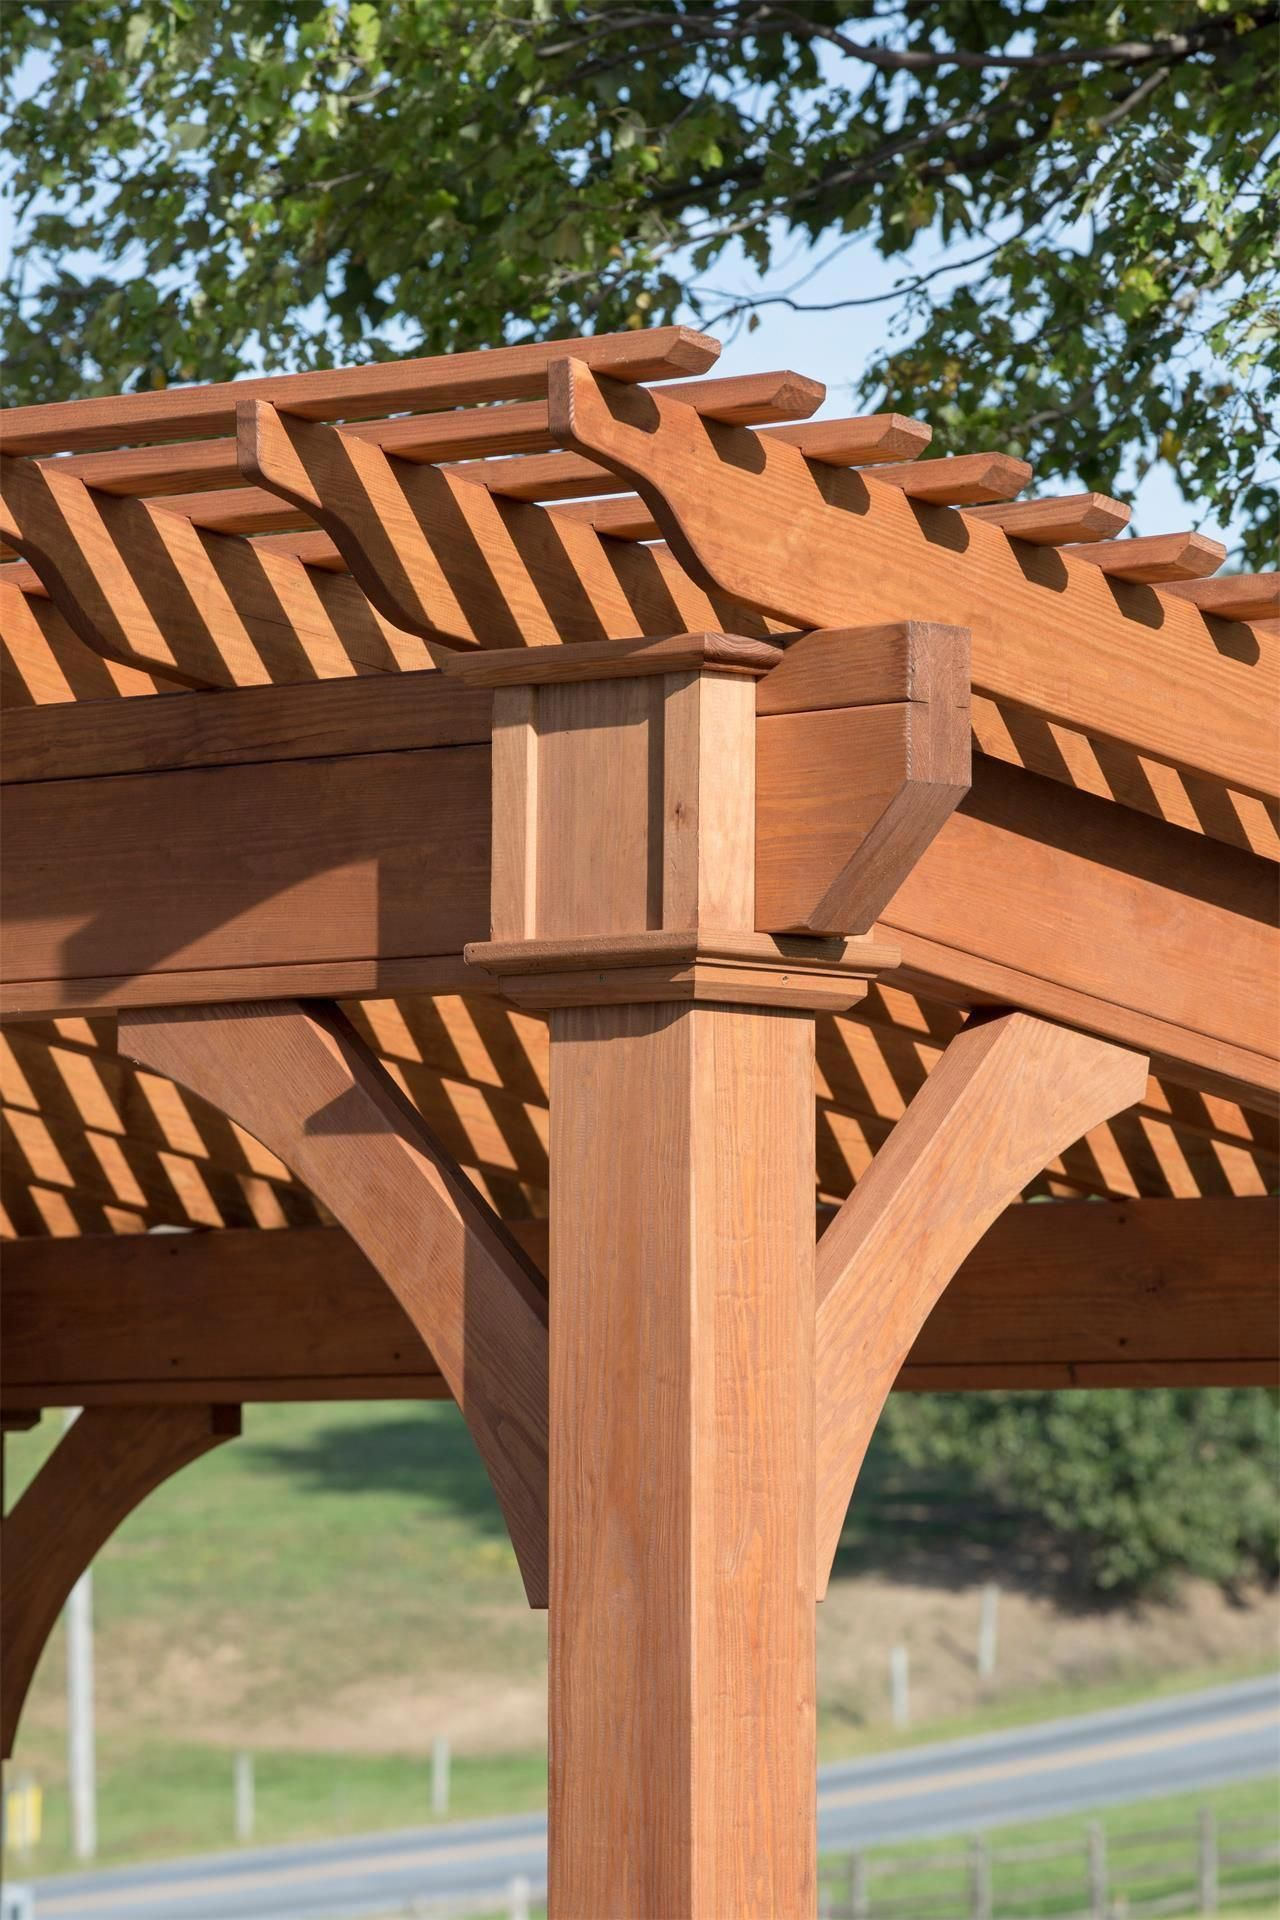 Pergola For Sale Lowes PergolaAttachedToHouseRoof